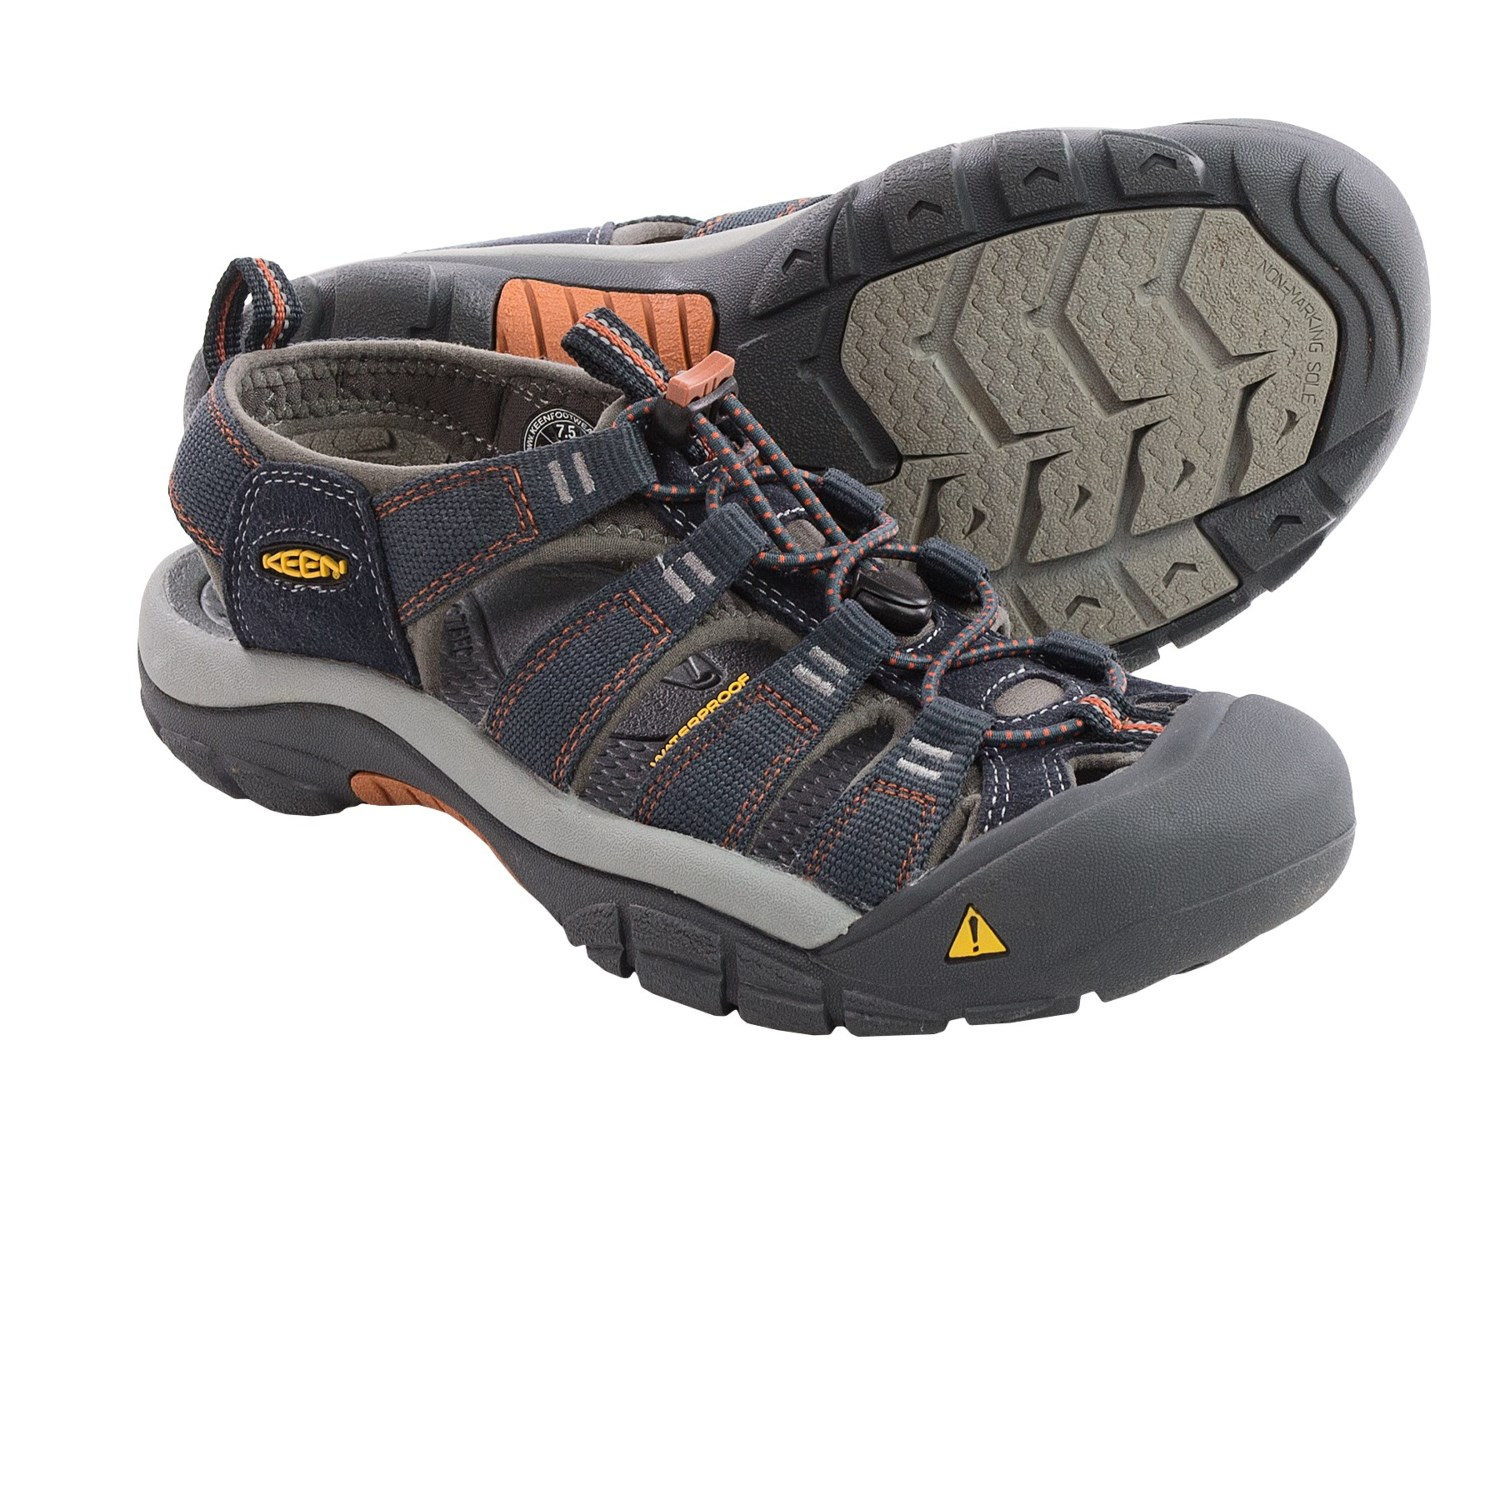 Keen Newport H2 Sandals (For Men) - Save 65%